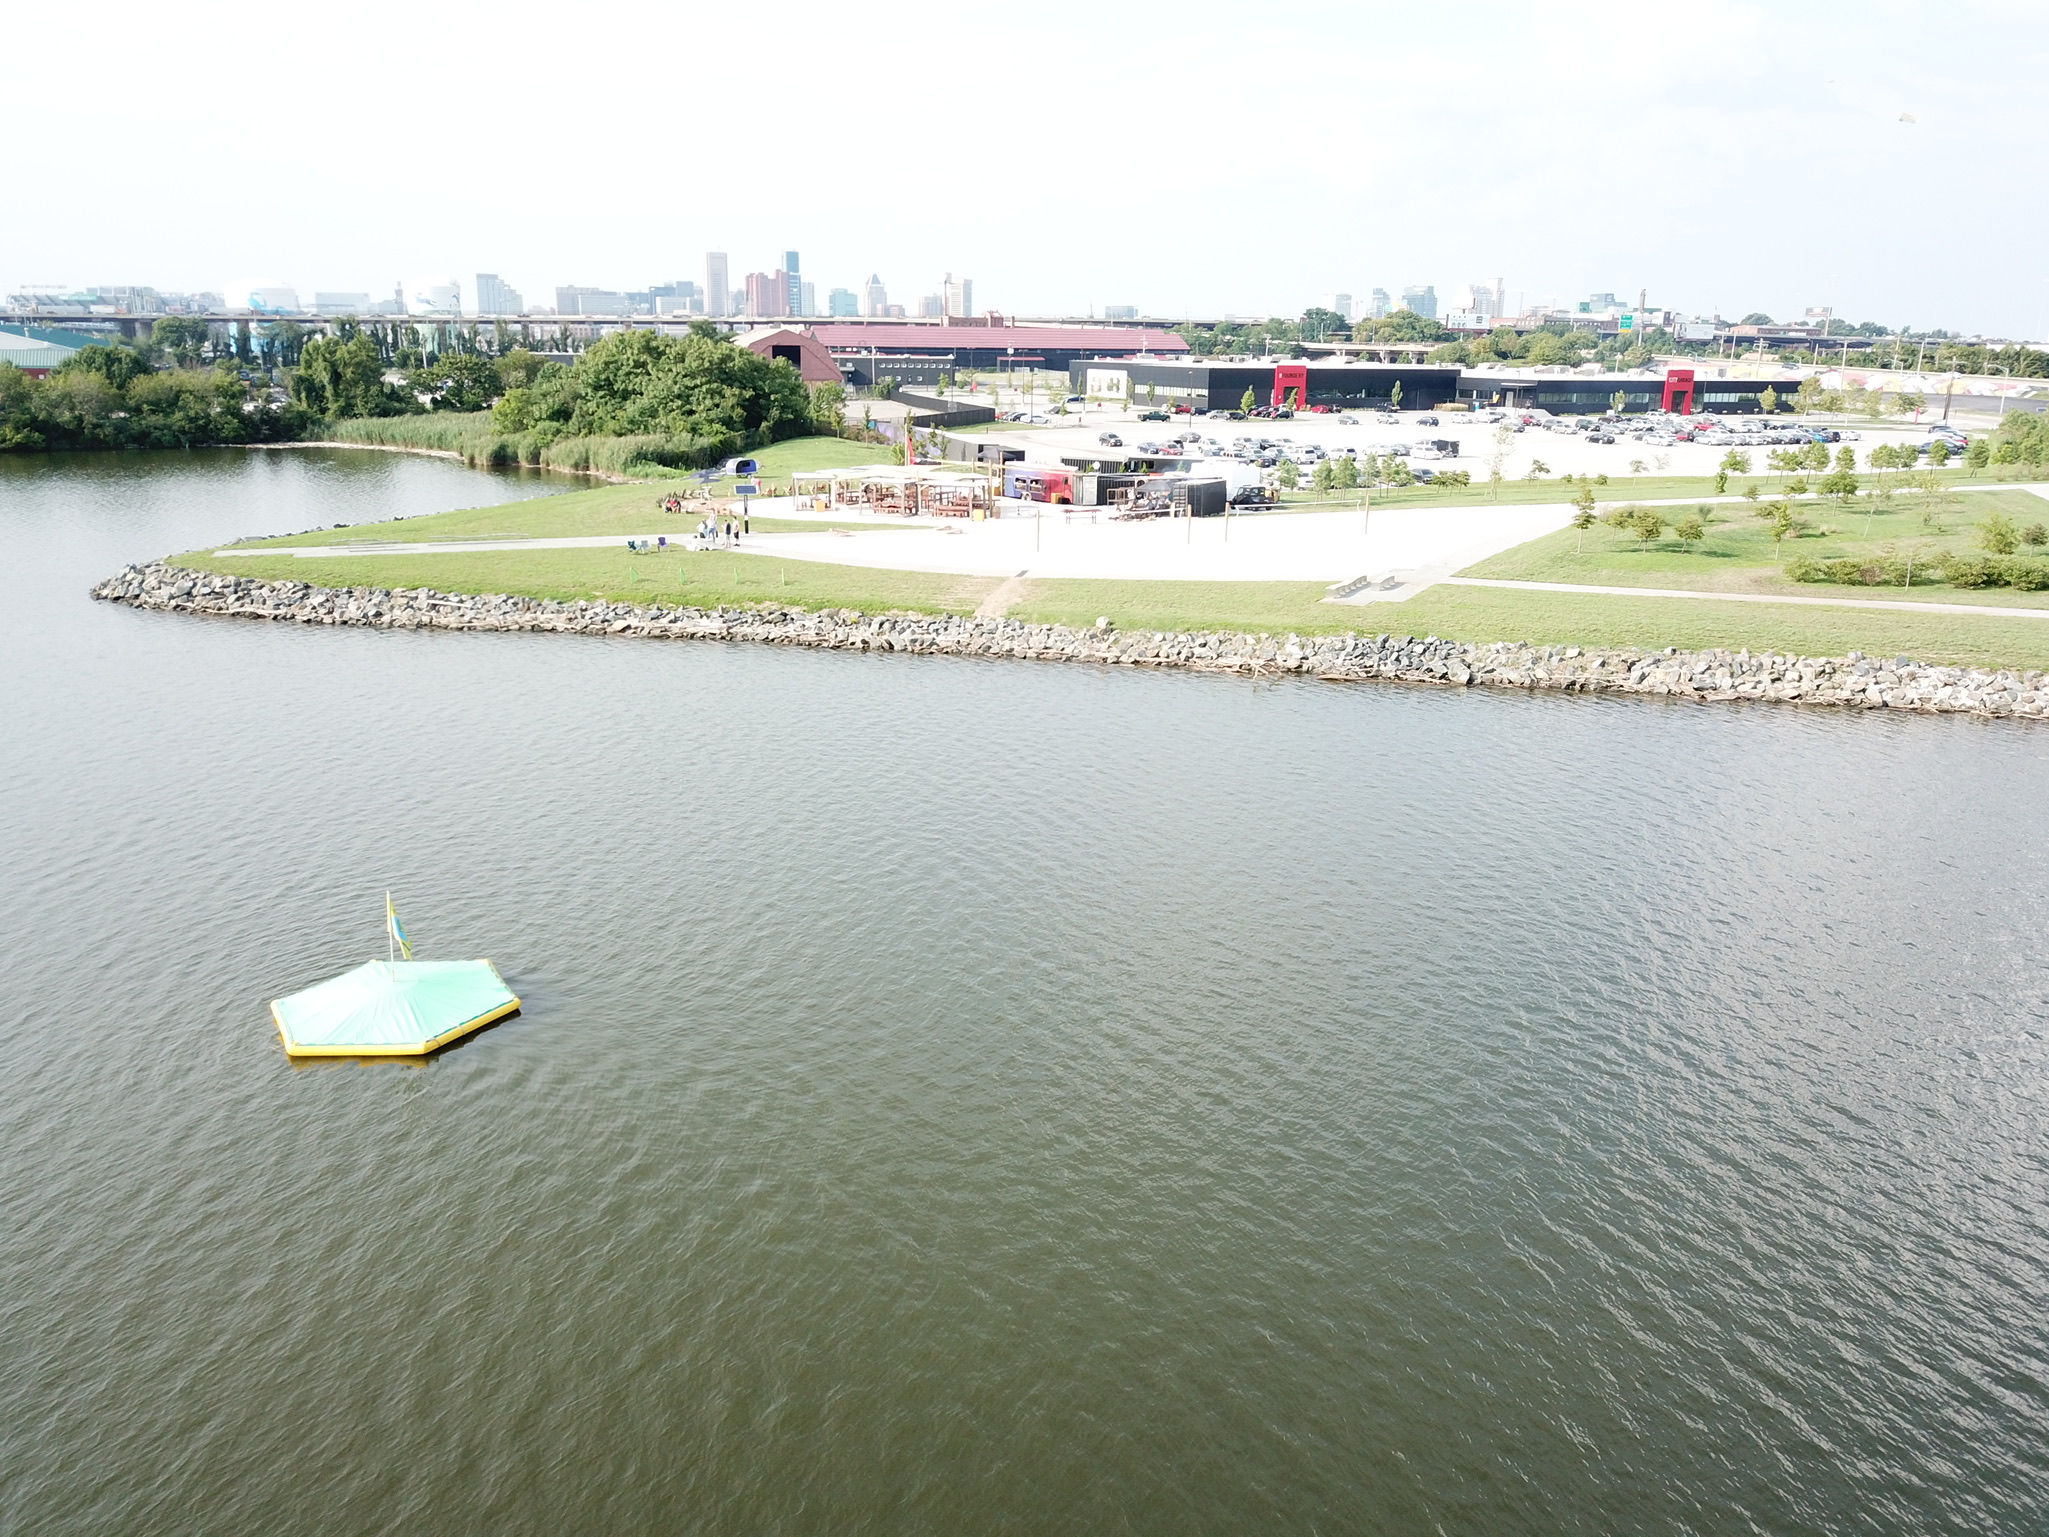 Hit biodegradable golf balls at a technology packed floating target at South Point! Located in Port Covington, Maryland. Our waterfront driving ranges are great for corporate events, weddings, happy hours, and celebrations.